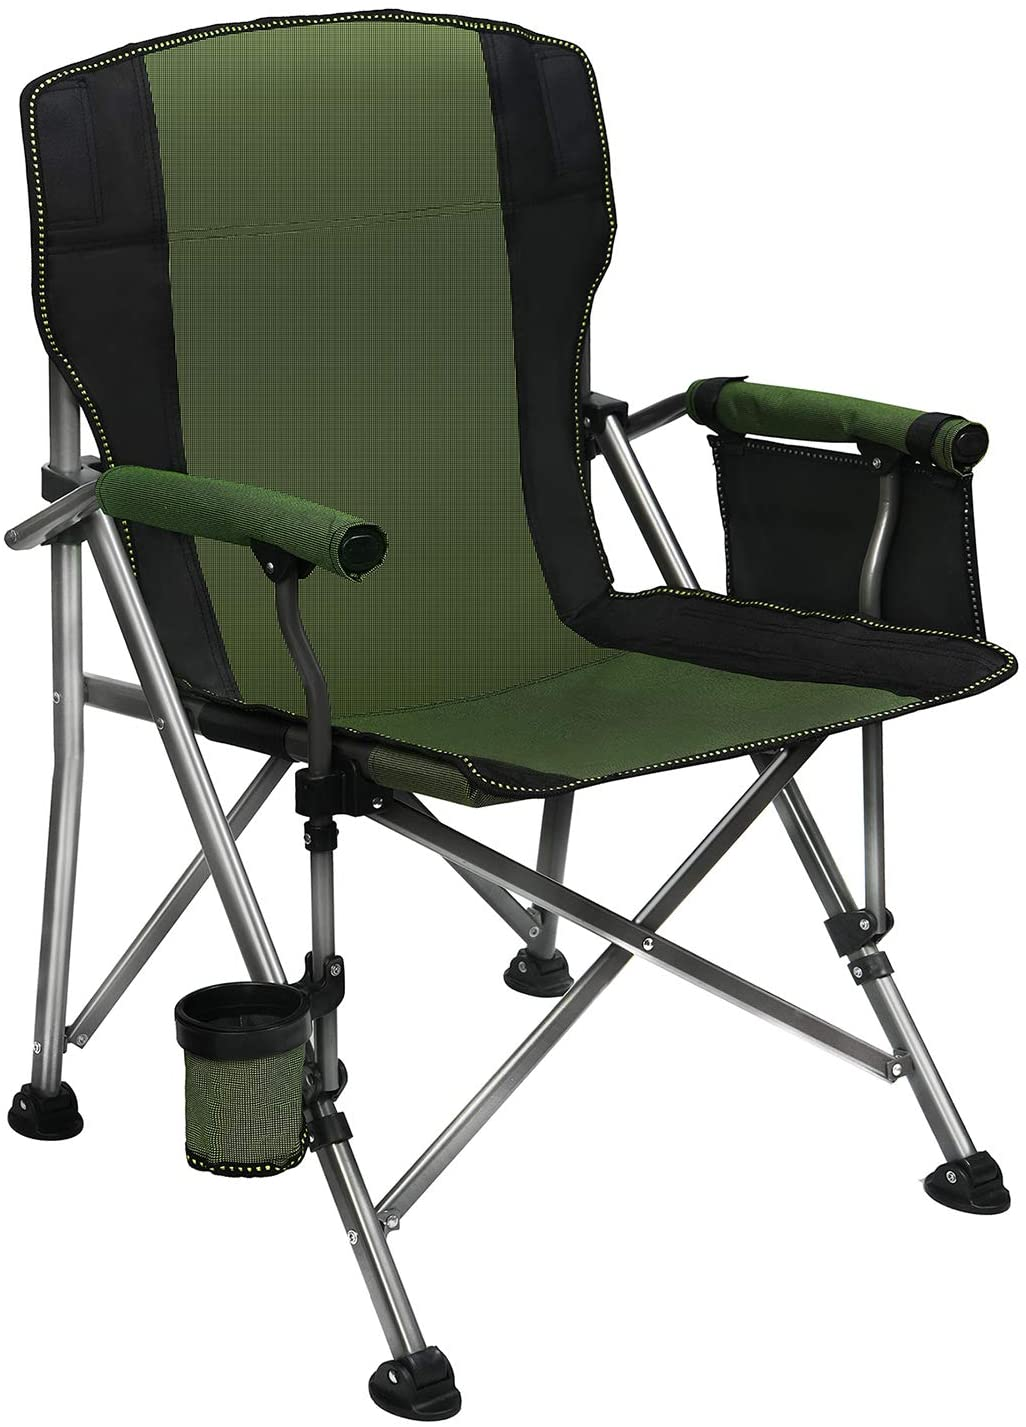 Folding Camping Chair Oversized Collapsible Camp Chair with Cup Holder and Removable Storage Bag, Heavy Duty Support 350 LBS, Portable Lawn Chair for Outdoor Camp, Picnic, Travel, Fishing